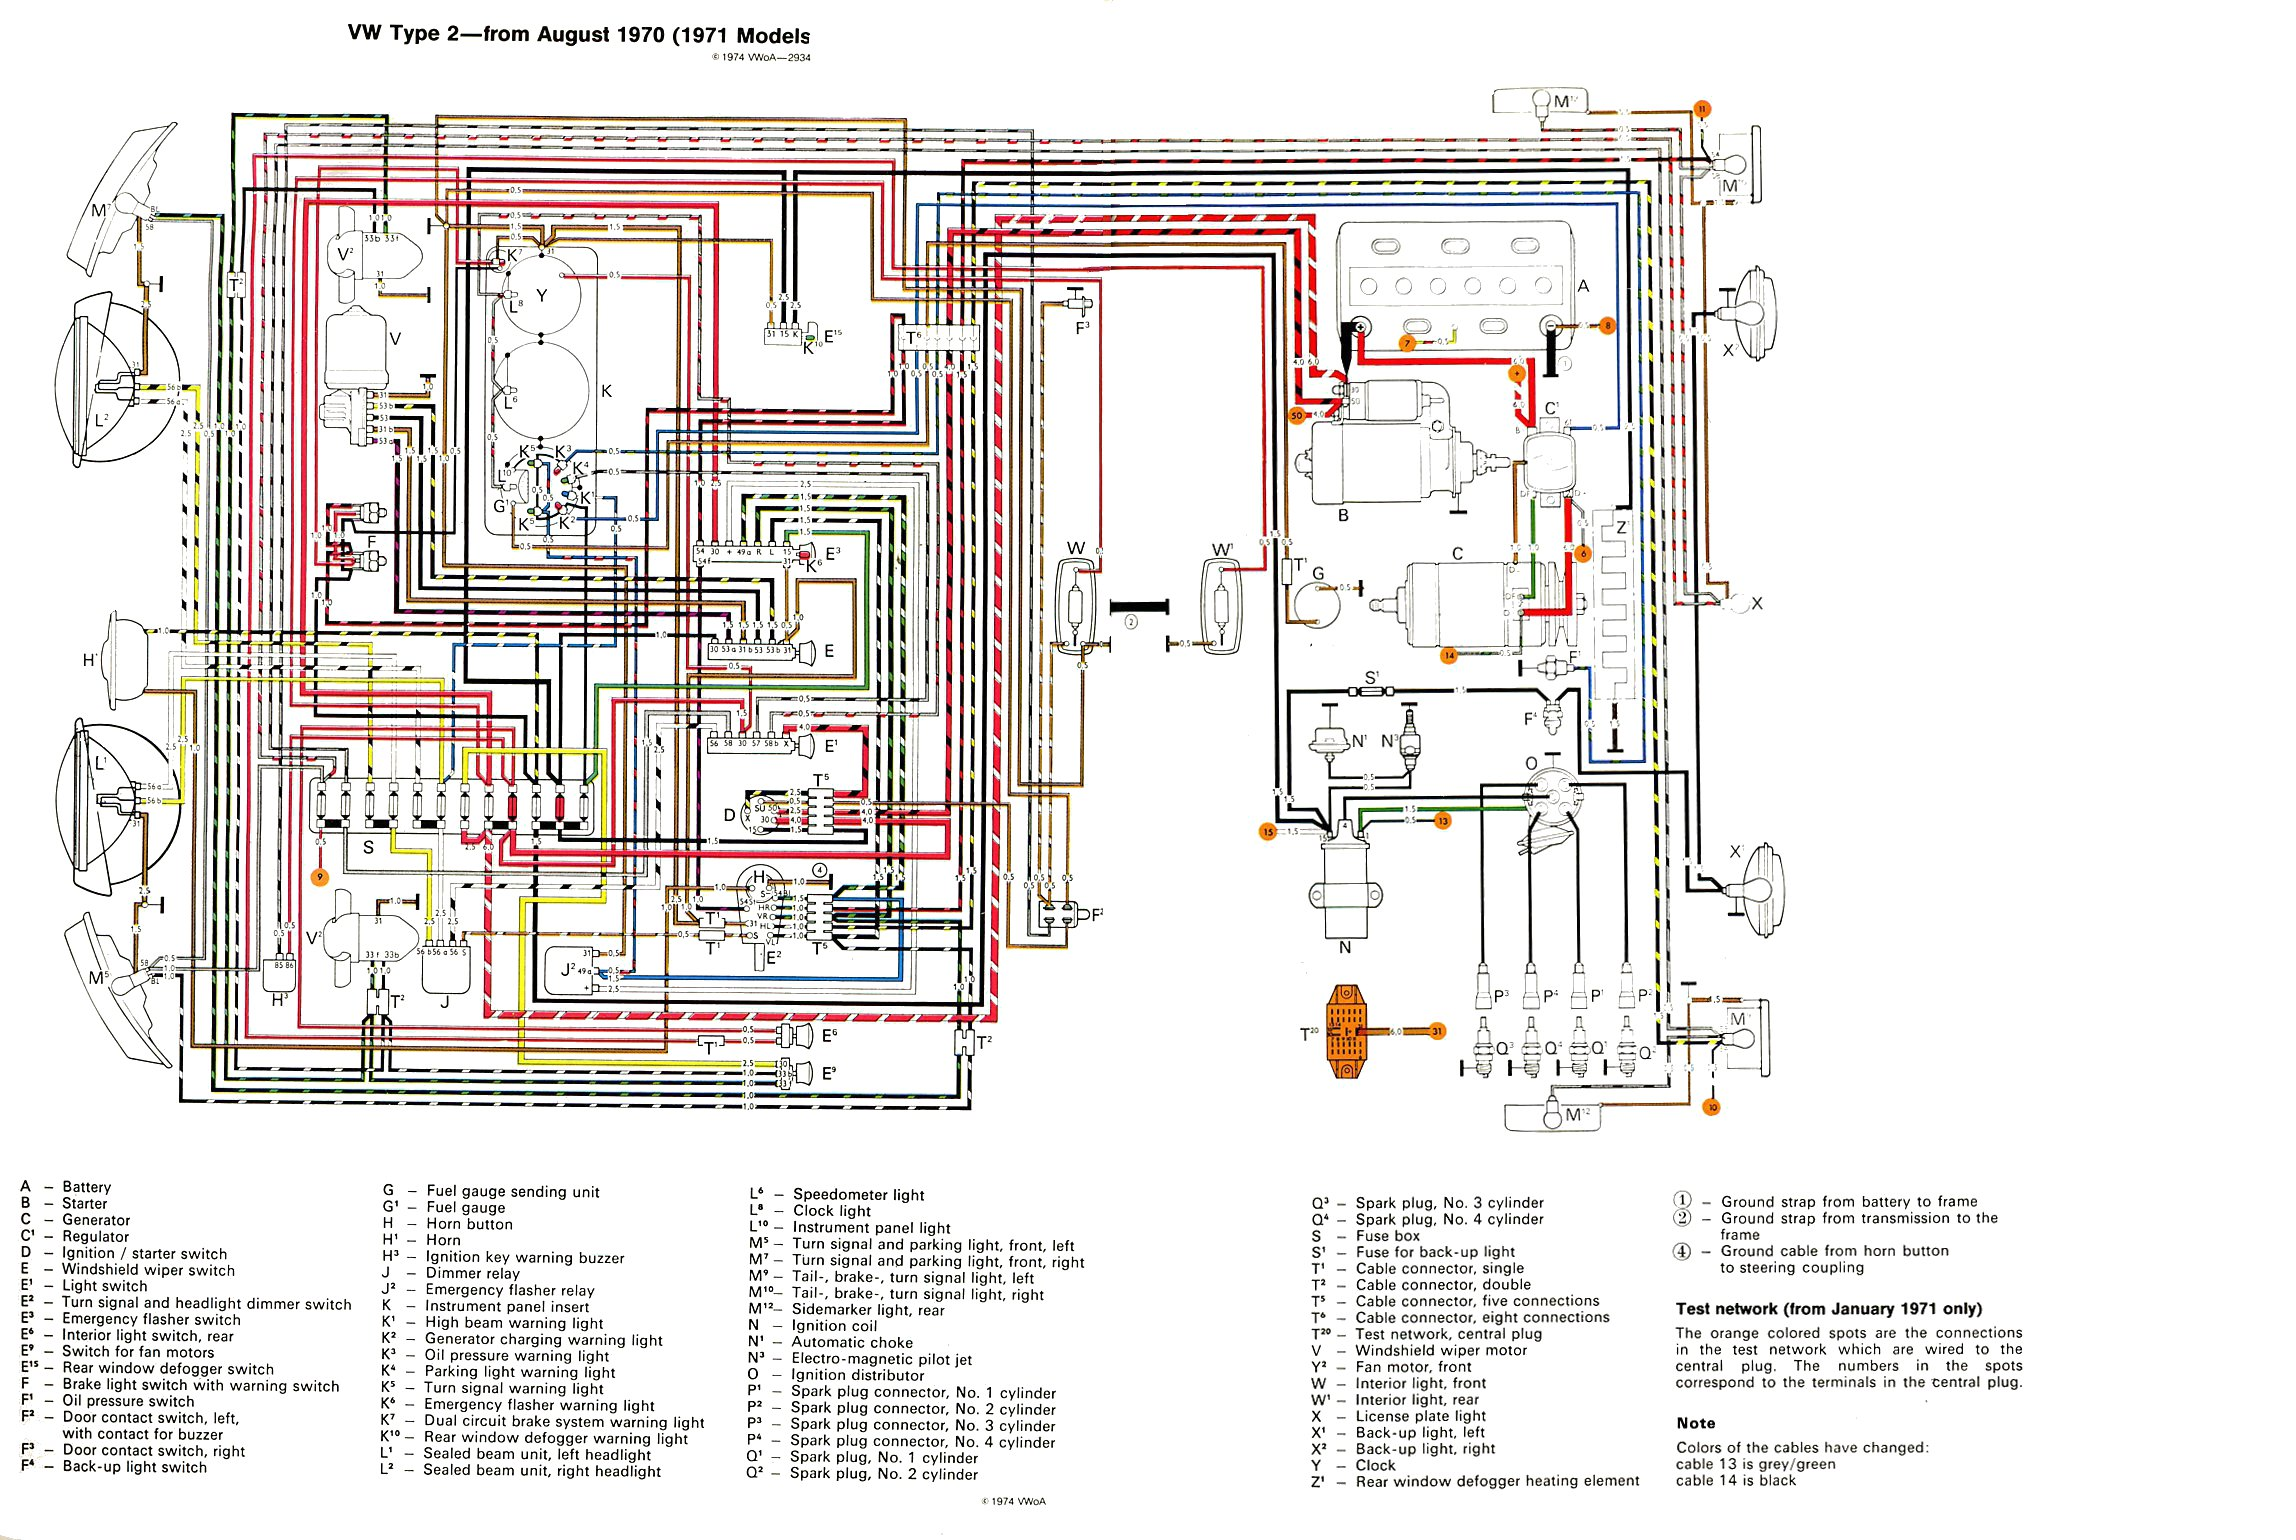 Volkswagen T2 Wiring Diagram | Wiring Diagram Centre on ka24de engine, vg30e wiring diagram, k7 wiring diagram, ecu wiring diagram, ka24de timing, h22a wiring diagram, harness wiring diagram, nissan wiring diagram, sr20de wiring diagram, ka24e engine diagram, swap wiring diagram, 240sx wiring diagram, 22re wiring diagram, 1.8t wiring diagram, sr20det wiring diagram, rb25det wiring diagram, motor wiring diagram, chassis wiring diagram, ka24e wiring diagram, rims wiring diagram,